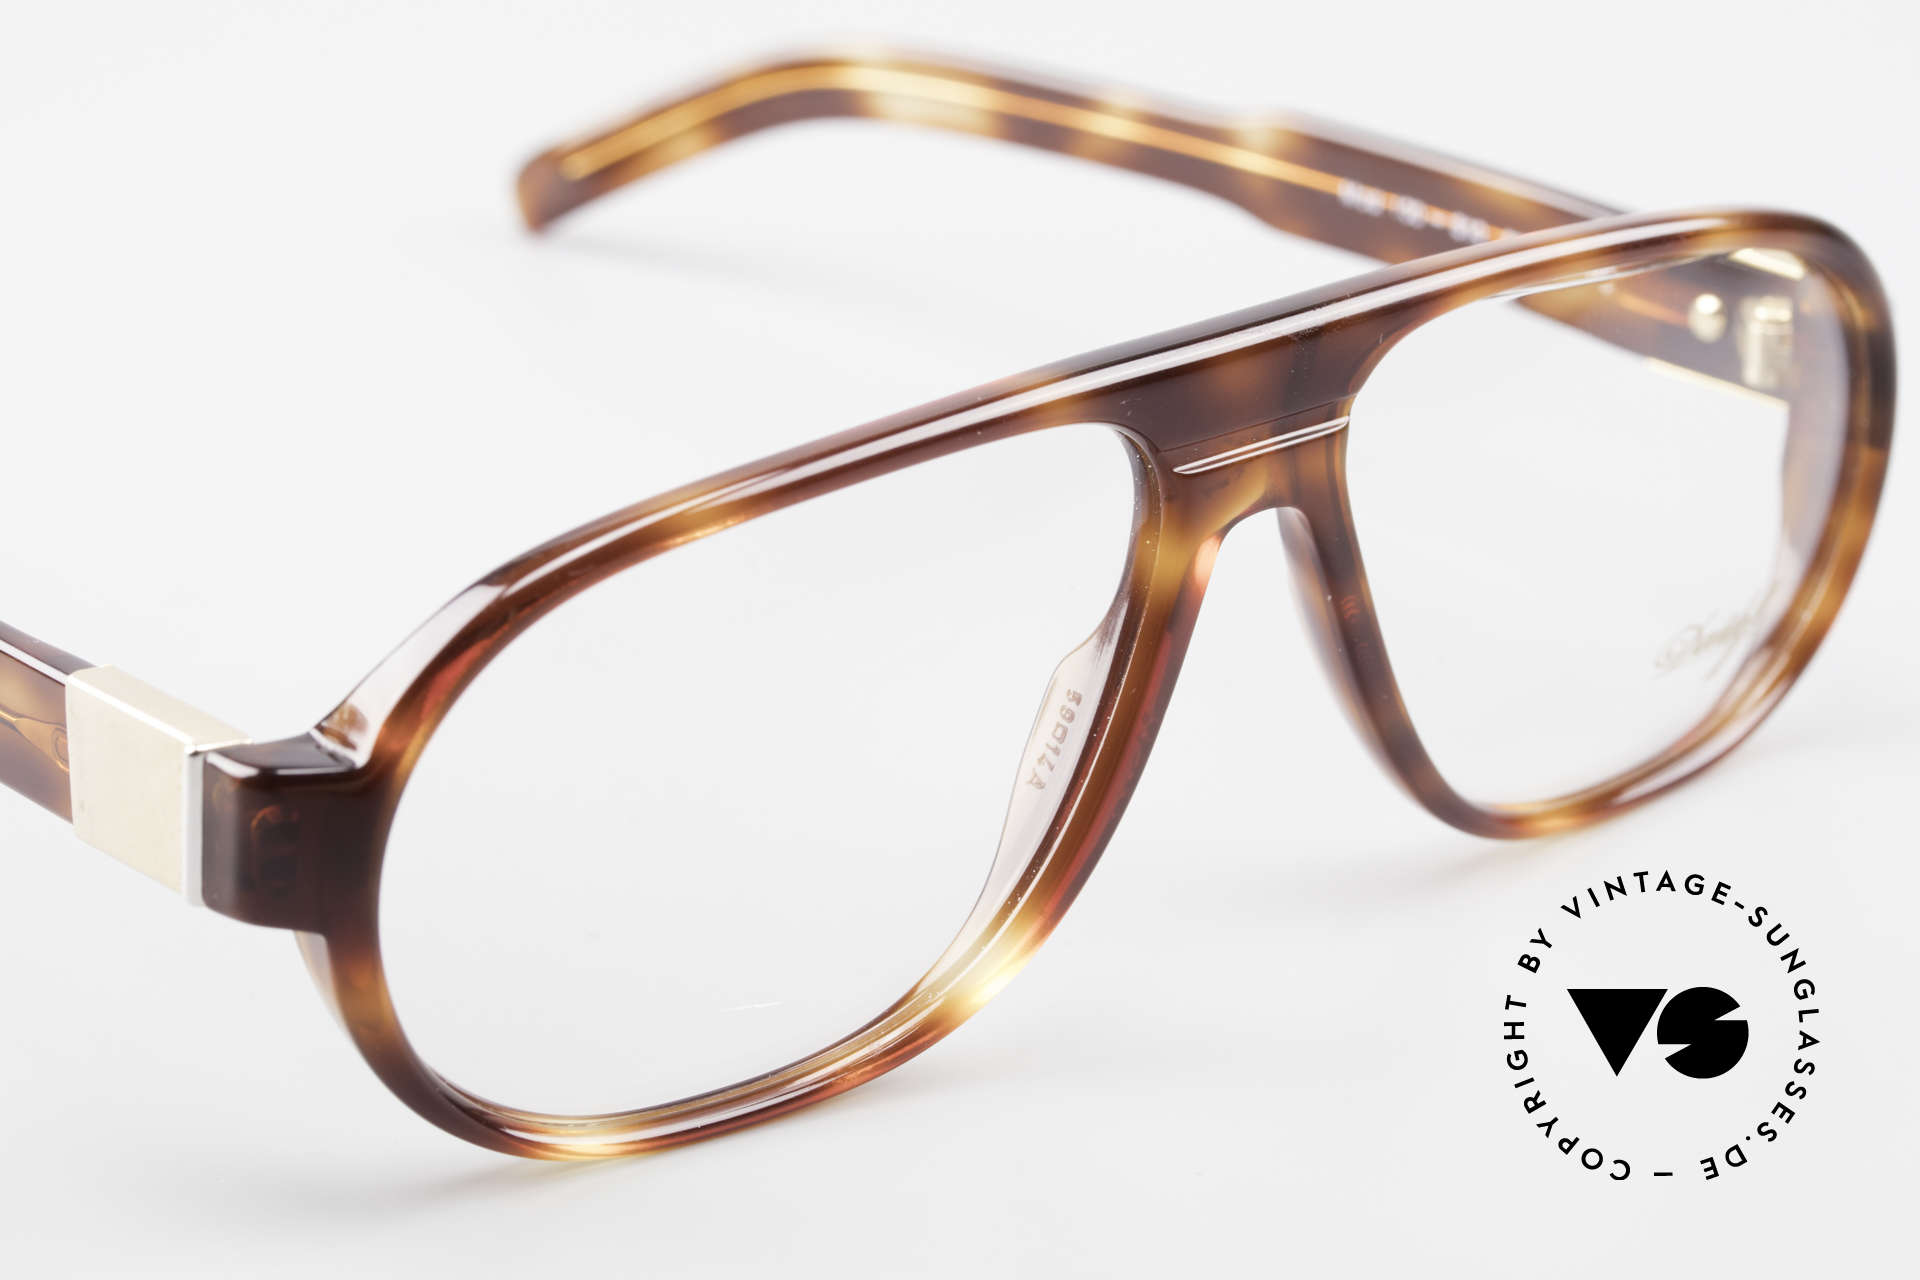 Davidoff 100 90's Men's Vintage Frame, demo lenses can be replaced with optical (sun) lenses, Made for Men